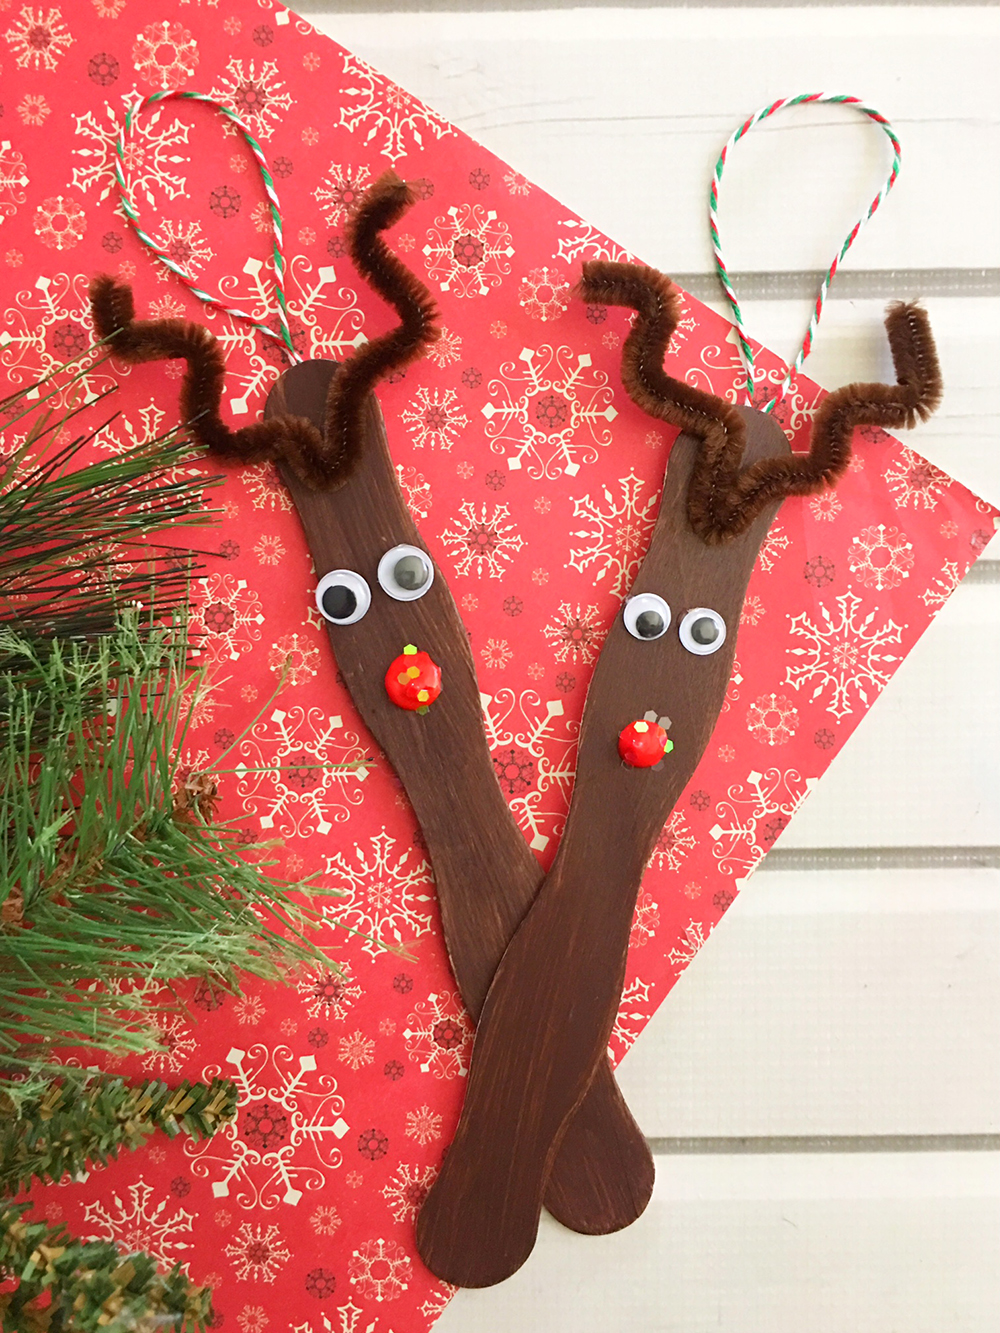 craft stick reindeer ornaments are an easy and fun christmas craft to do with the whole